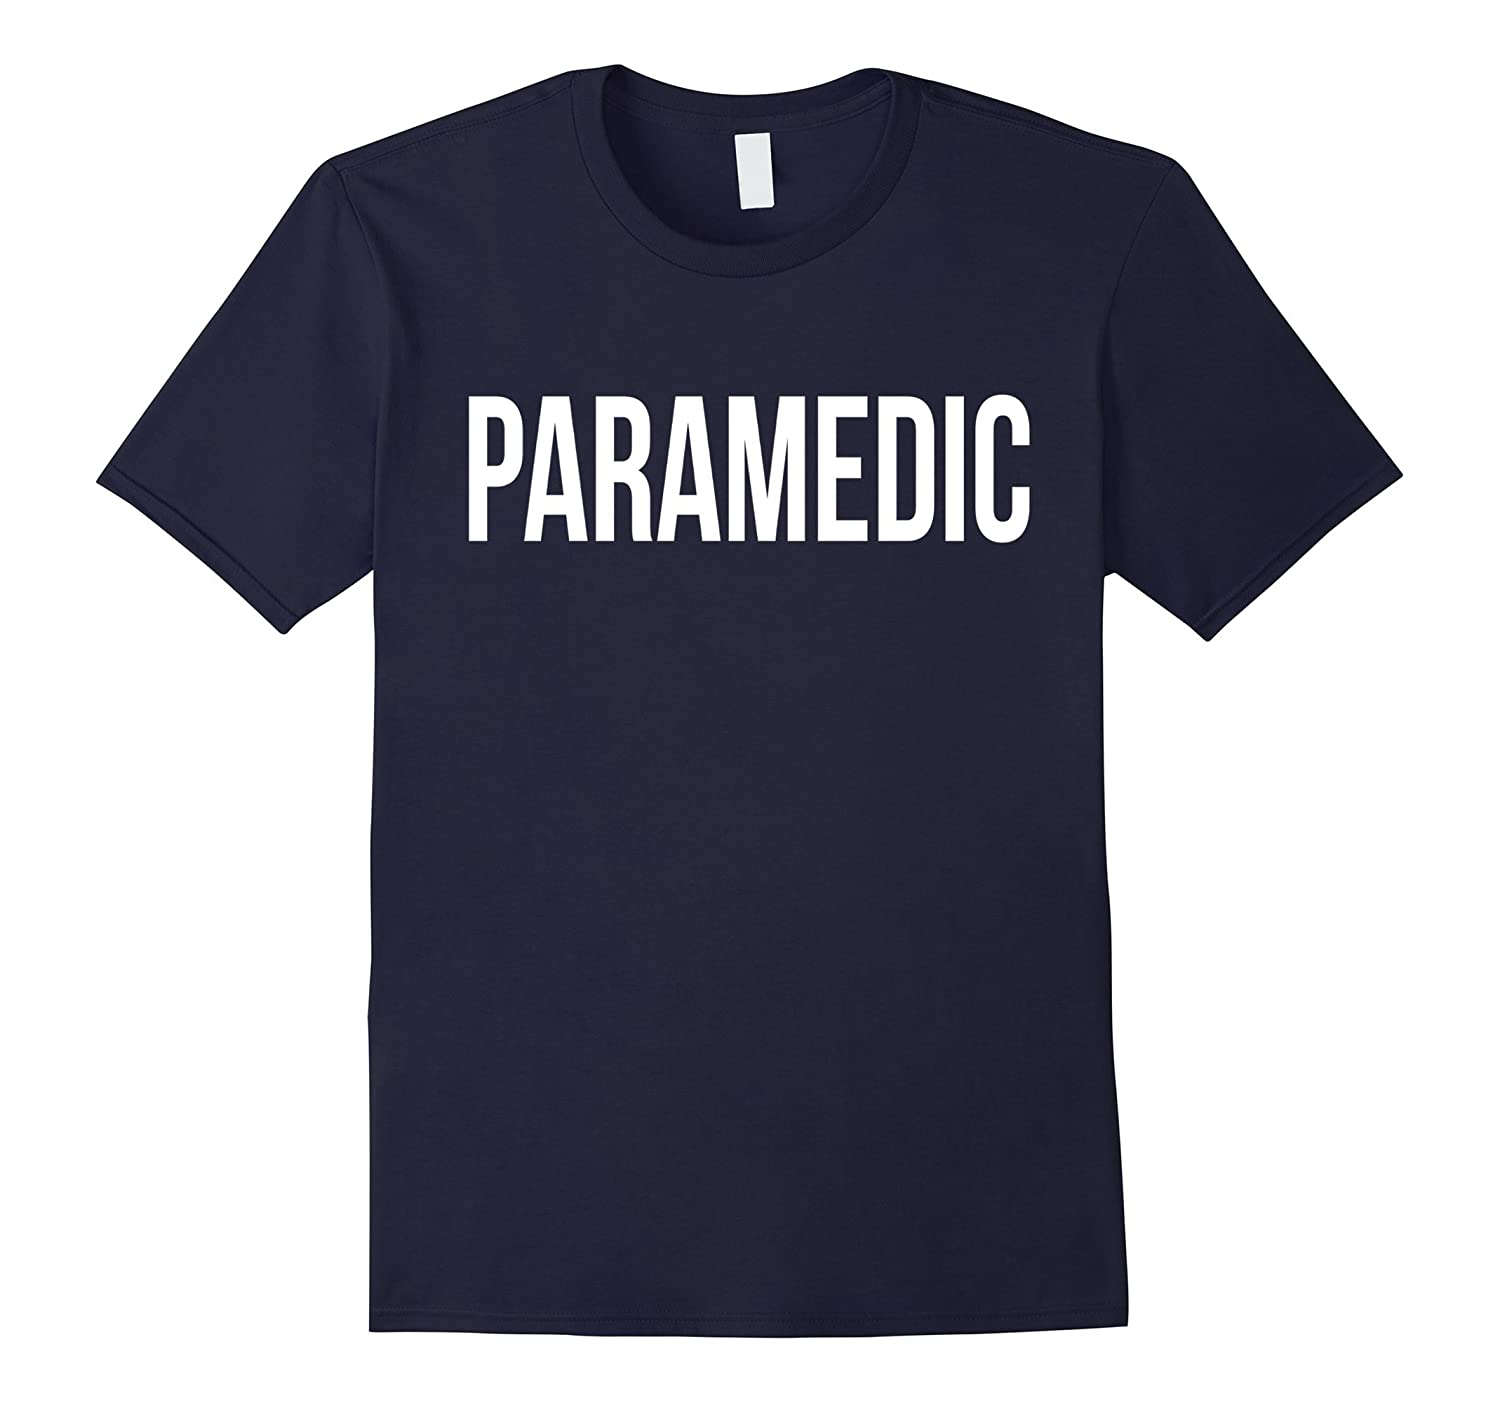 Awesome Paramedic T-shirt Best Paramedic Costume Ever-PL